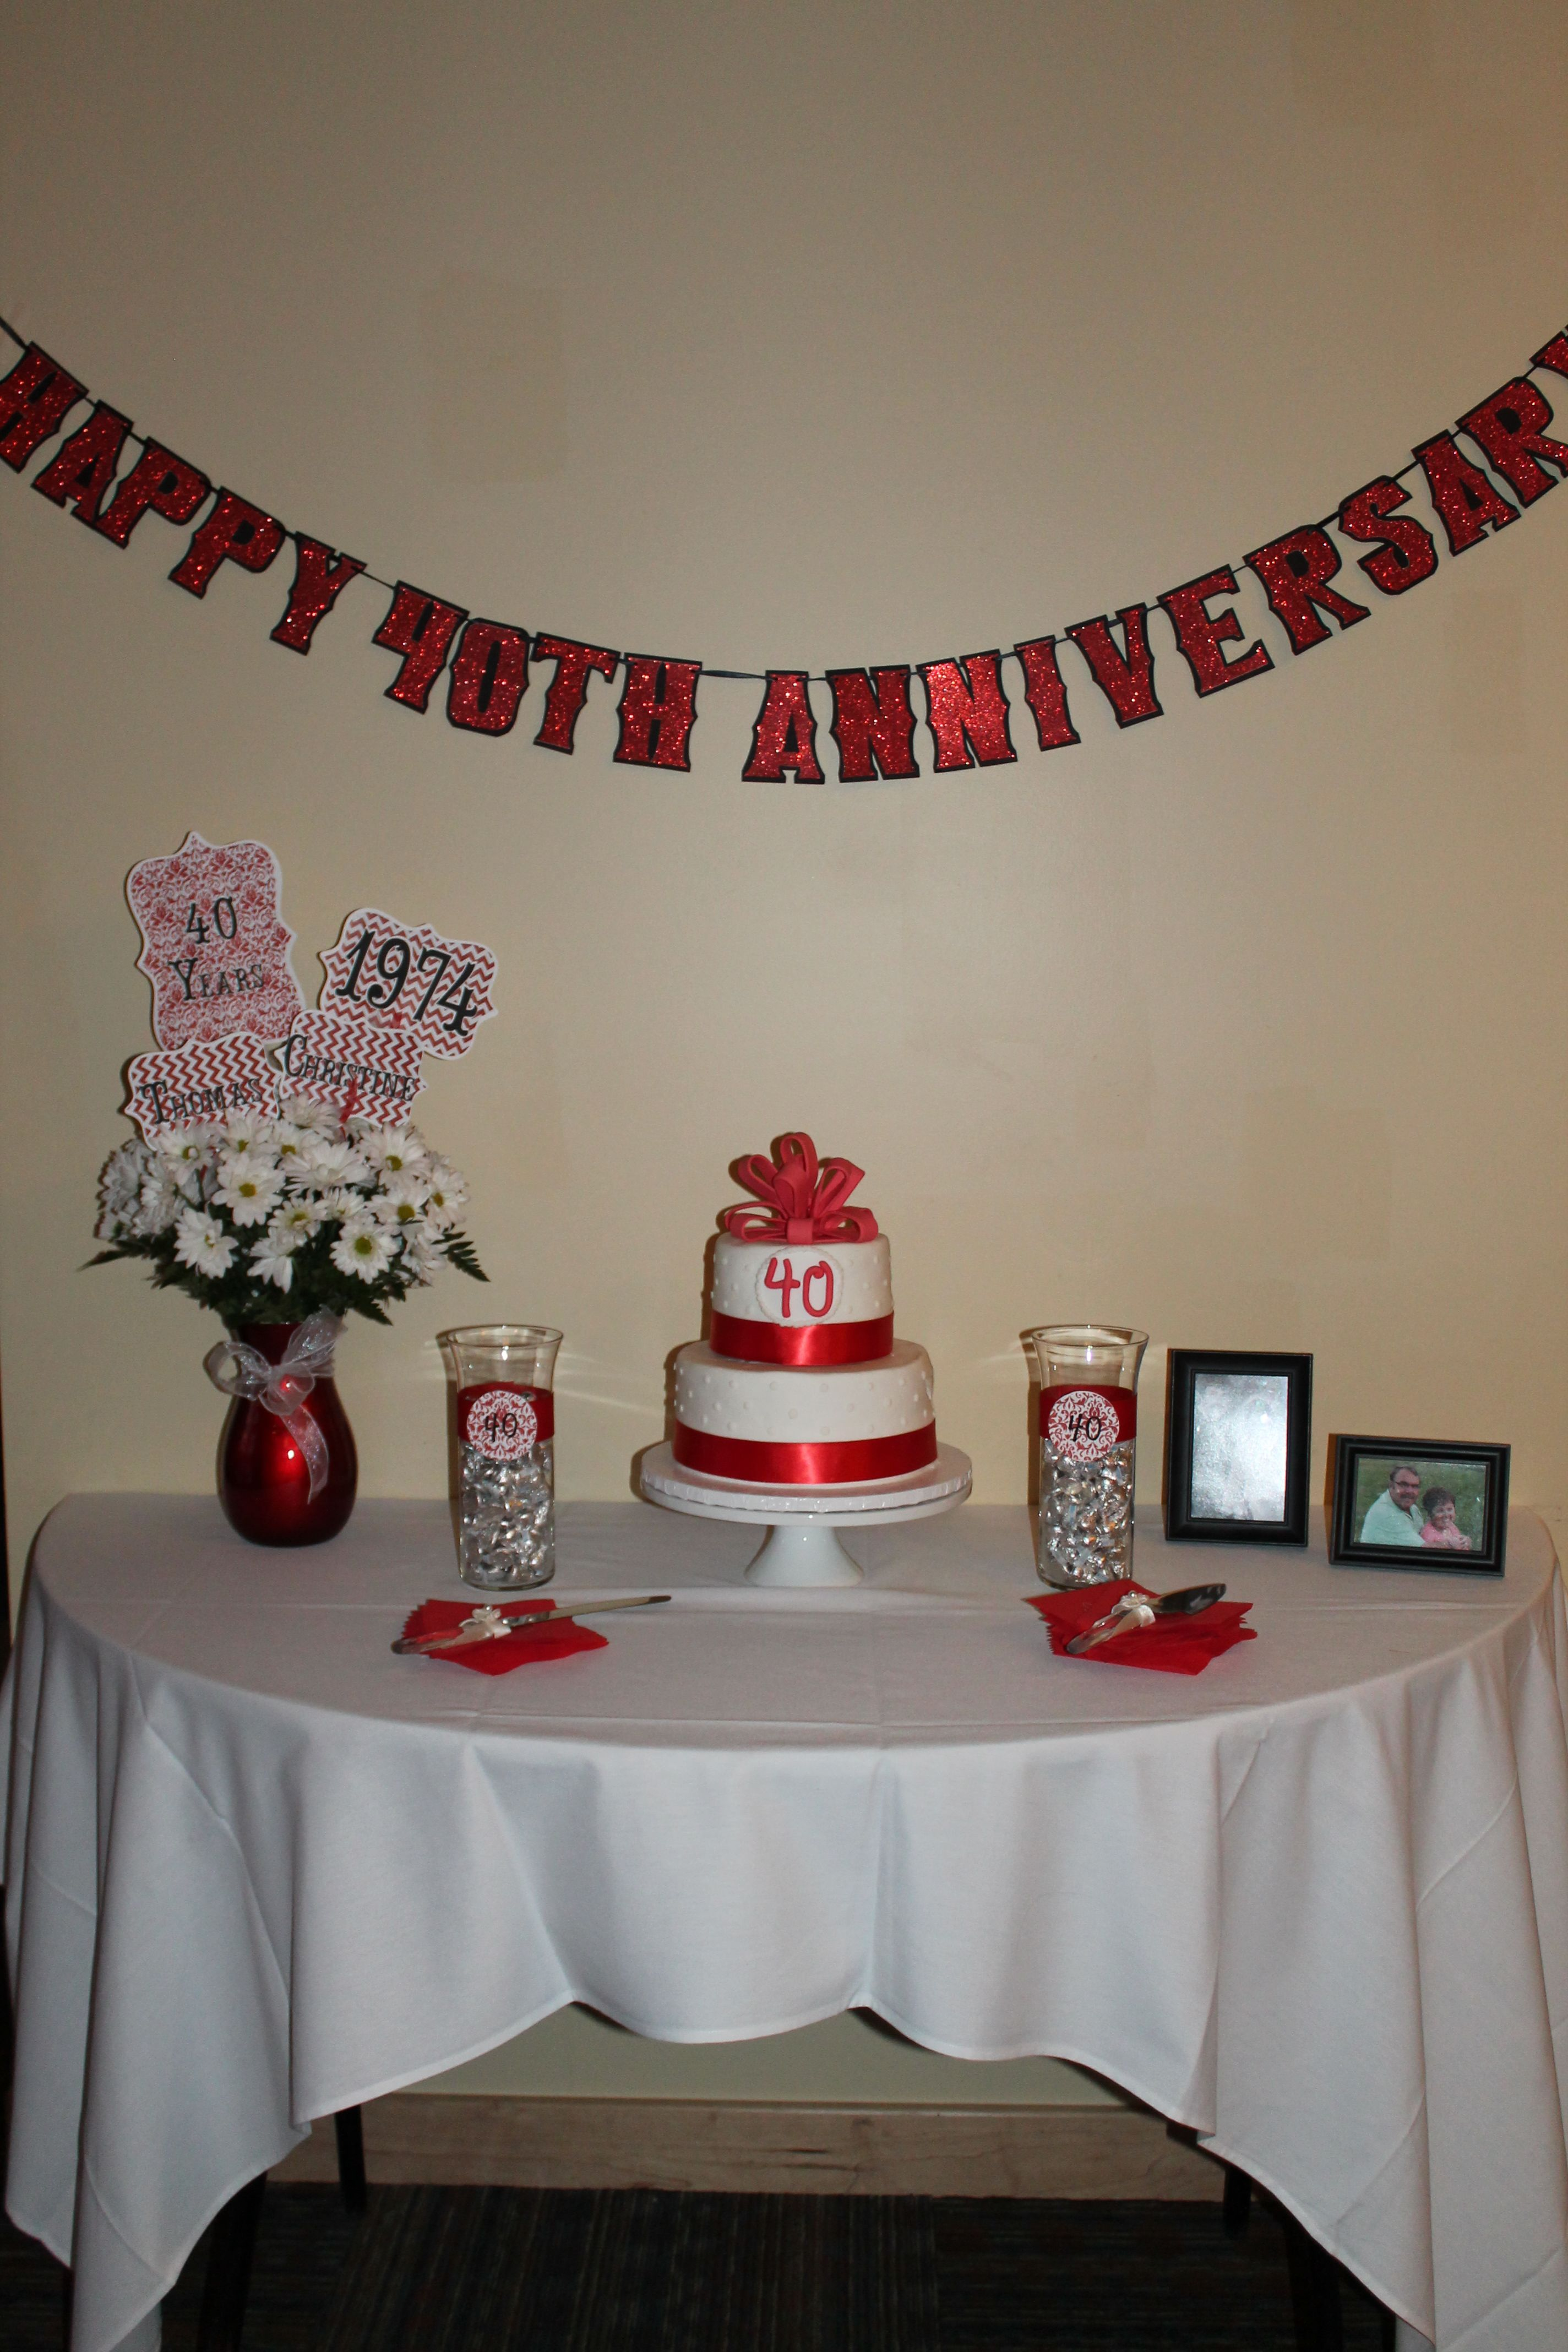 Mom & Dad's surprise 40th wedding anniversary dinner party